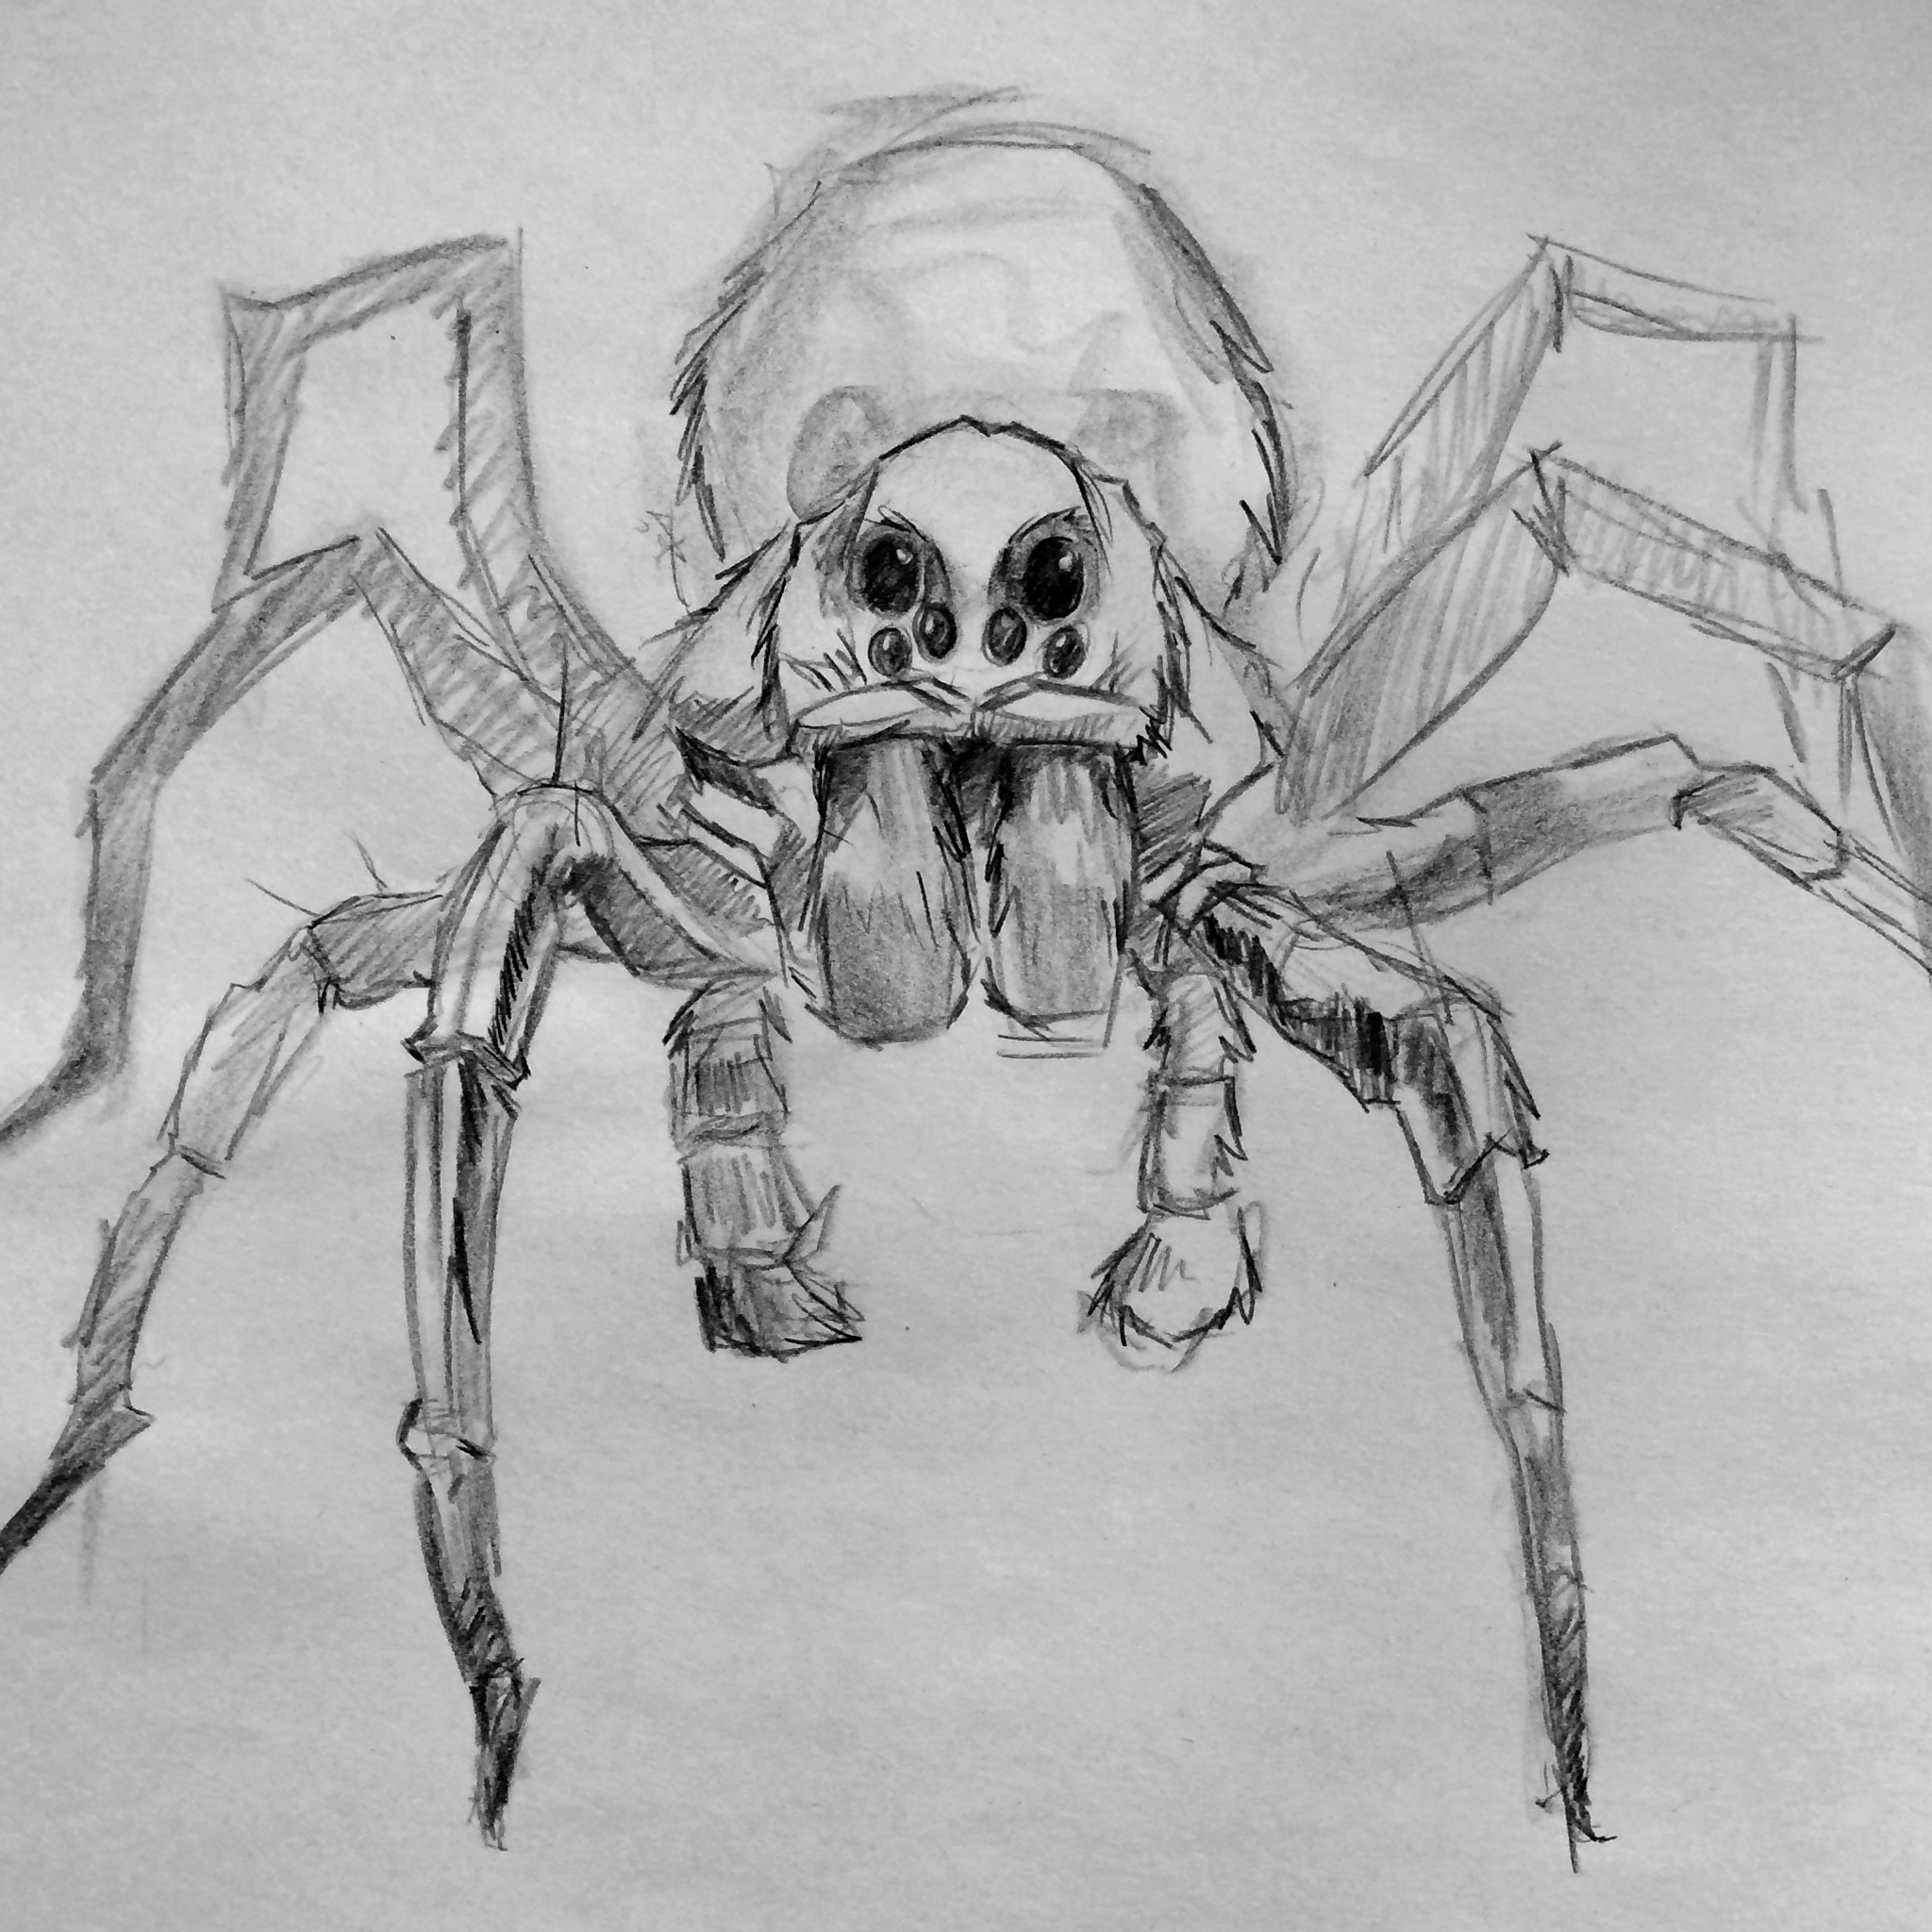 qq_spider_portrait